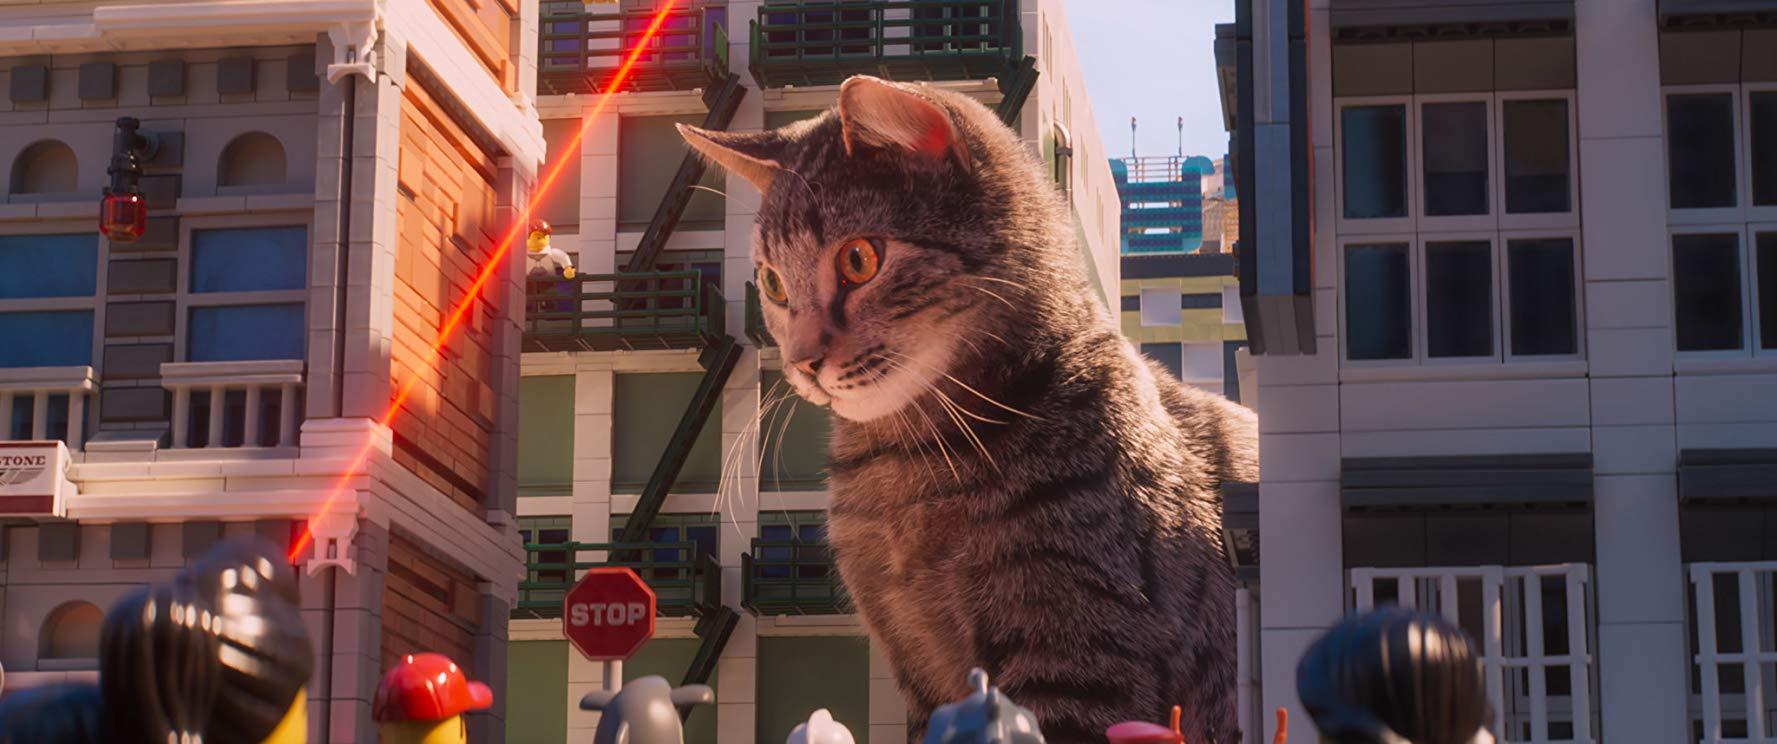 The unveiling of the Ultimate Weapon - a cat and laser pointer in The Lego Ninjago Movie (2017)